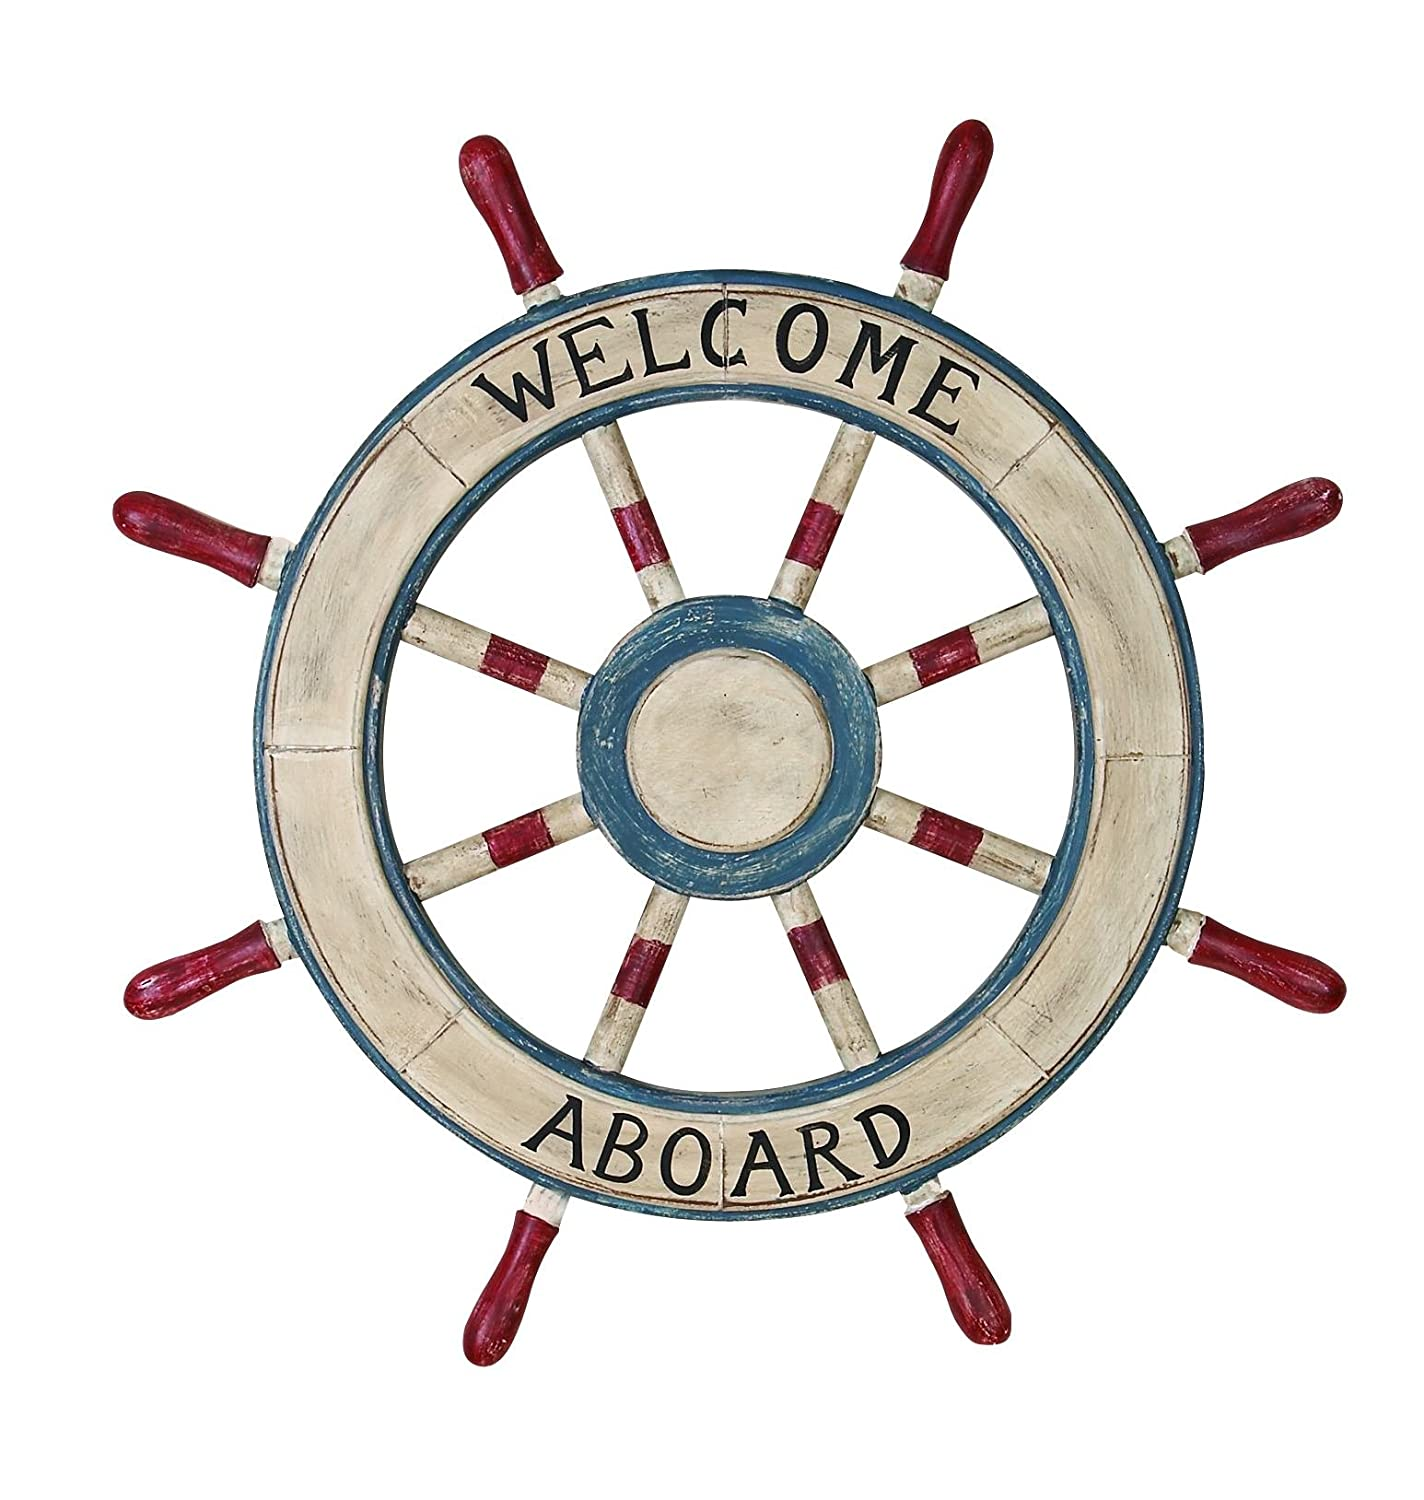 Welcome aboard boat ships life ring clock - Painted Ships Wheel 23 Nautical Wooden Captain Boat